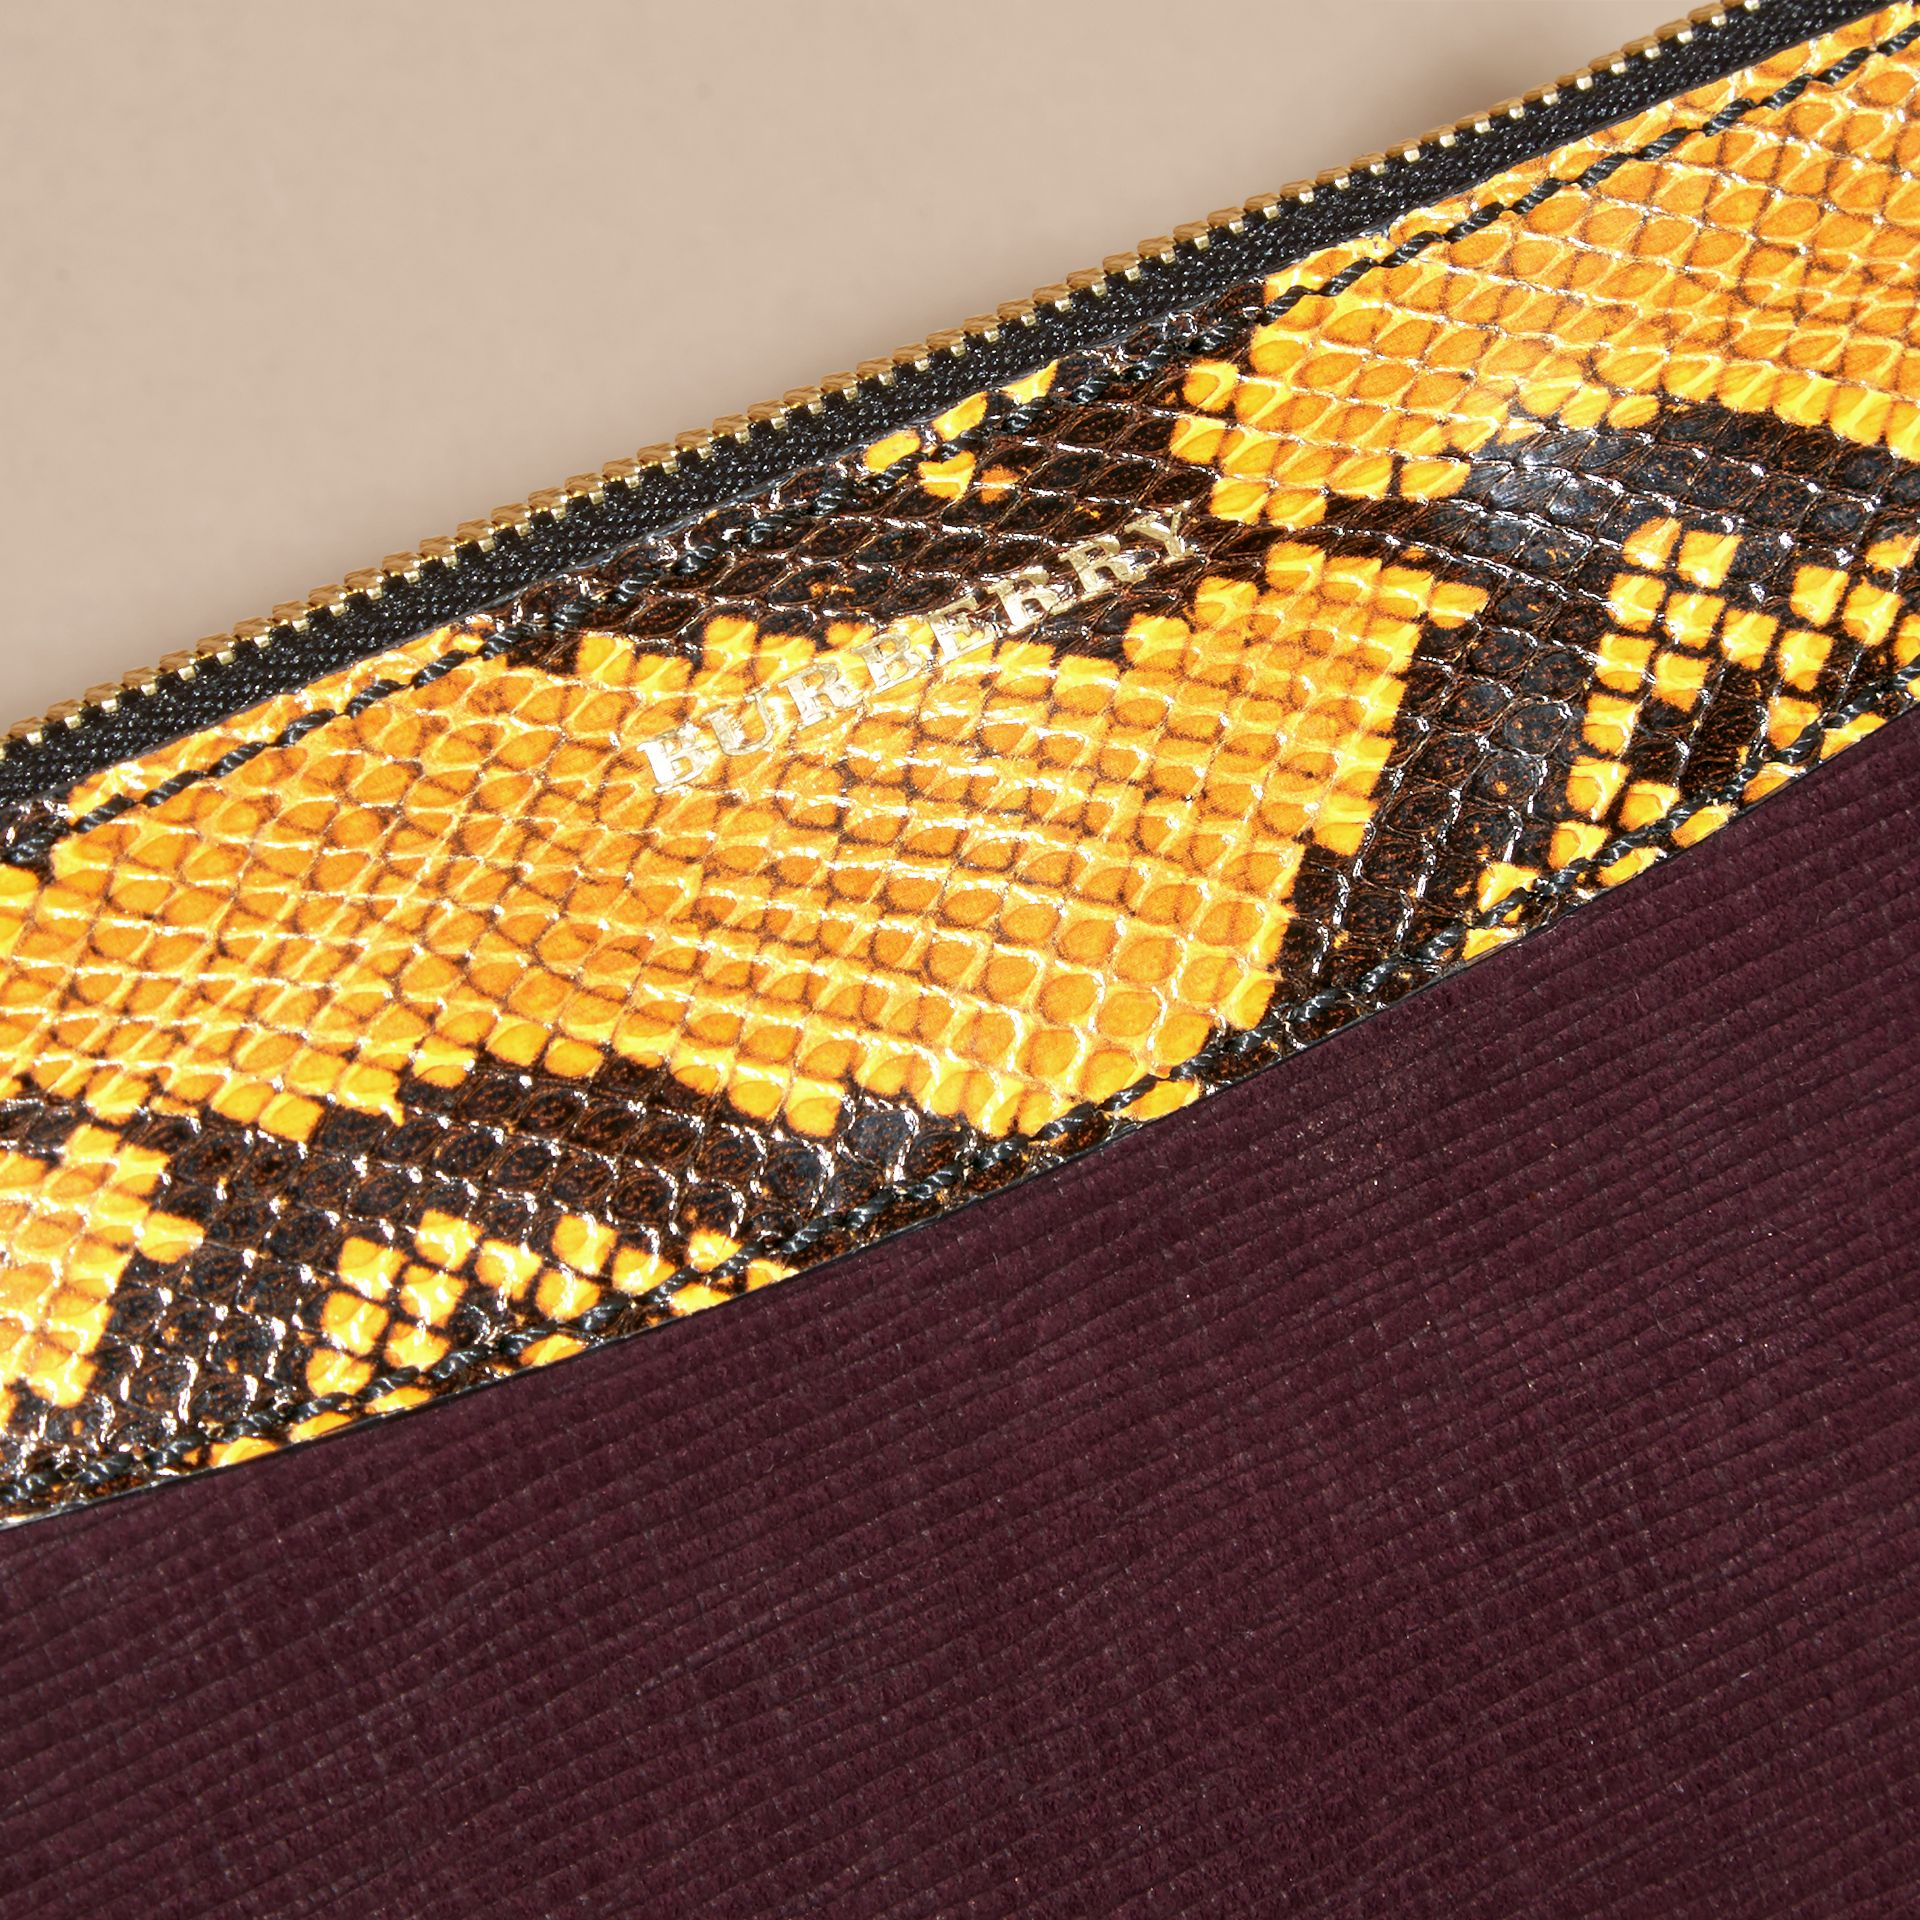 Elderberry Leather, House Check and Snakeskin Clutch Bag Elderberry - gallery image 7